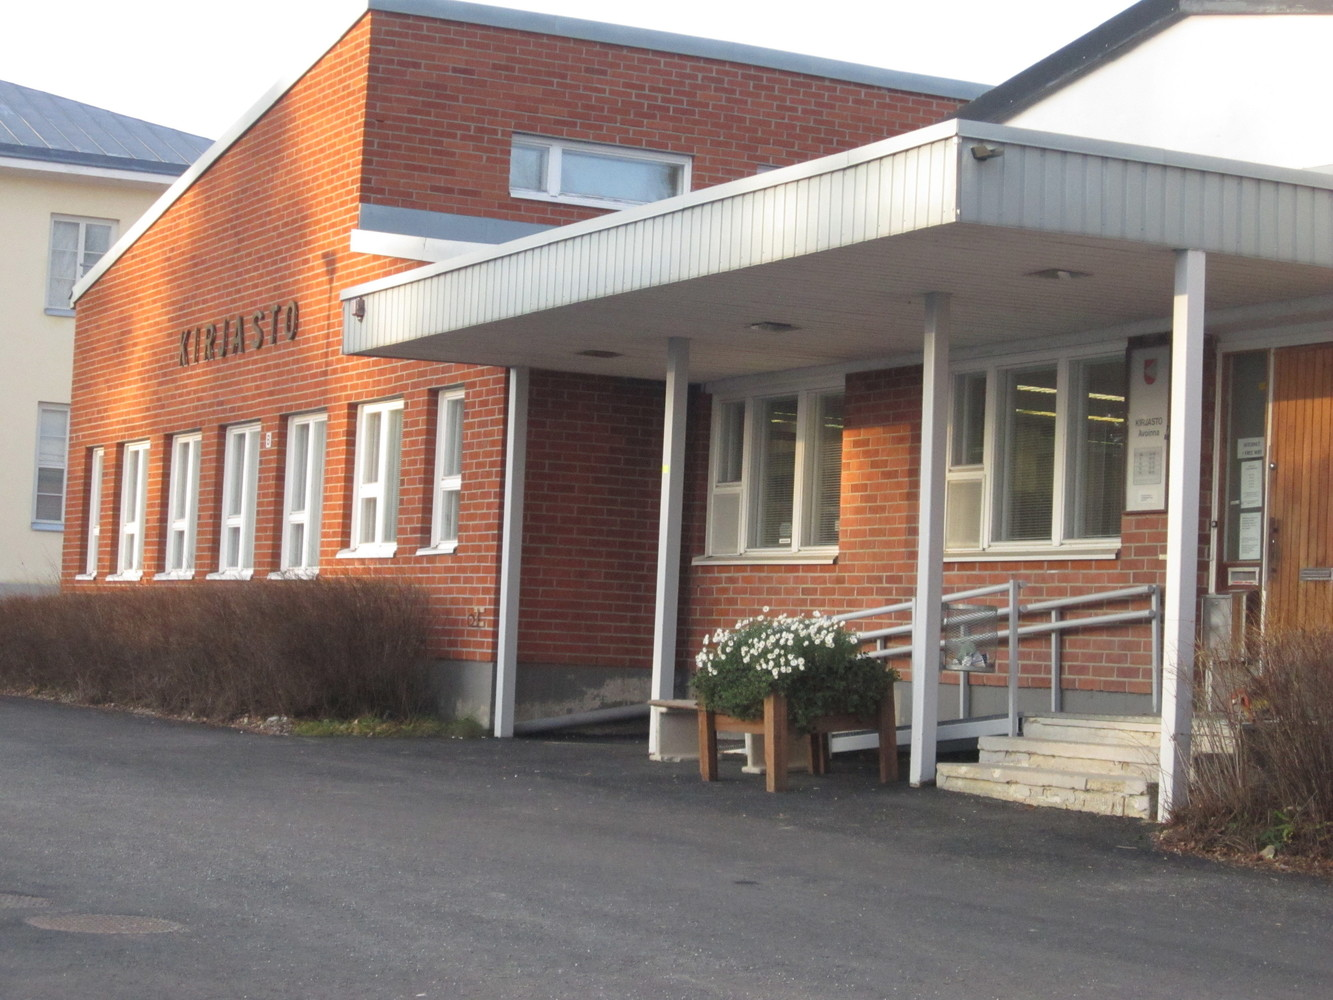 Kaavi branch library